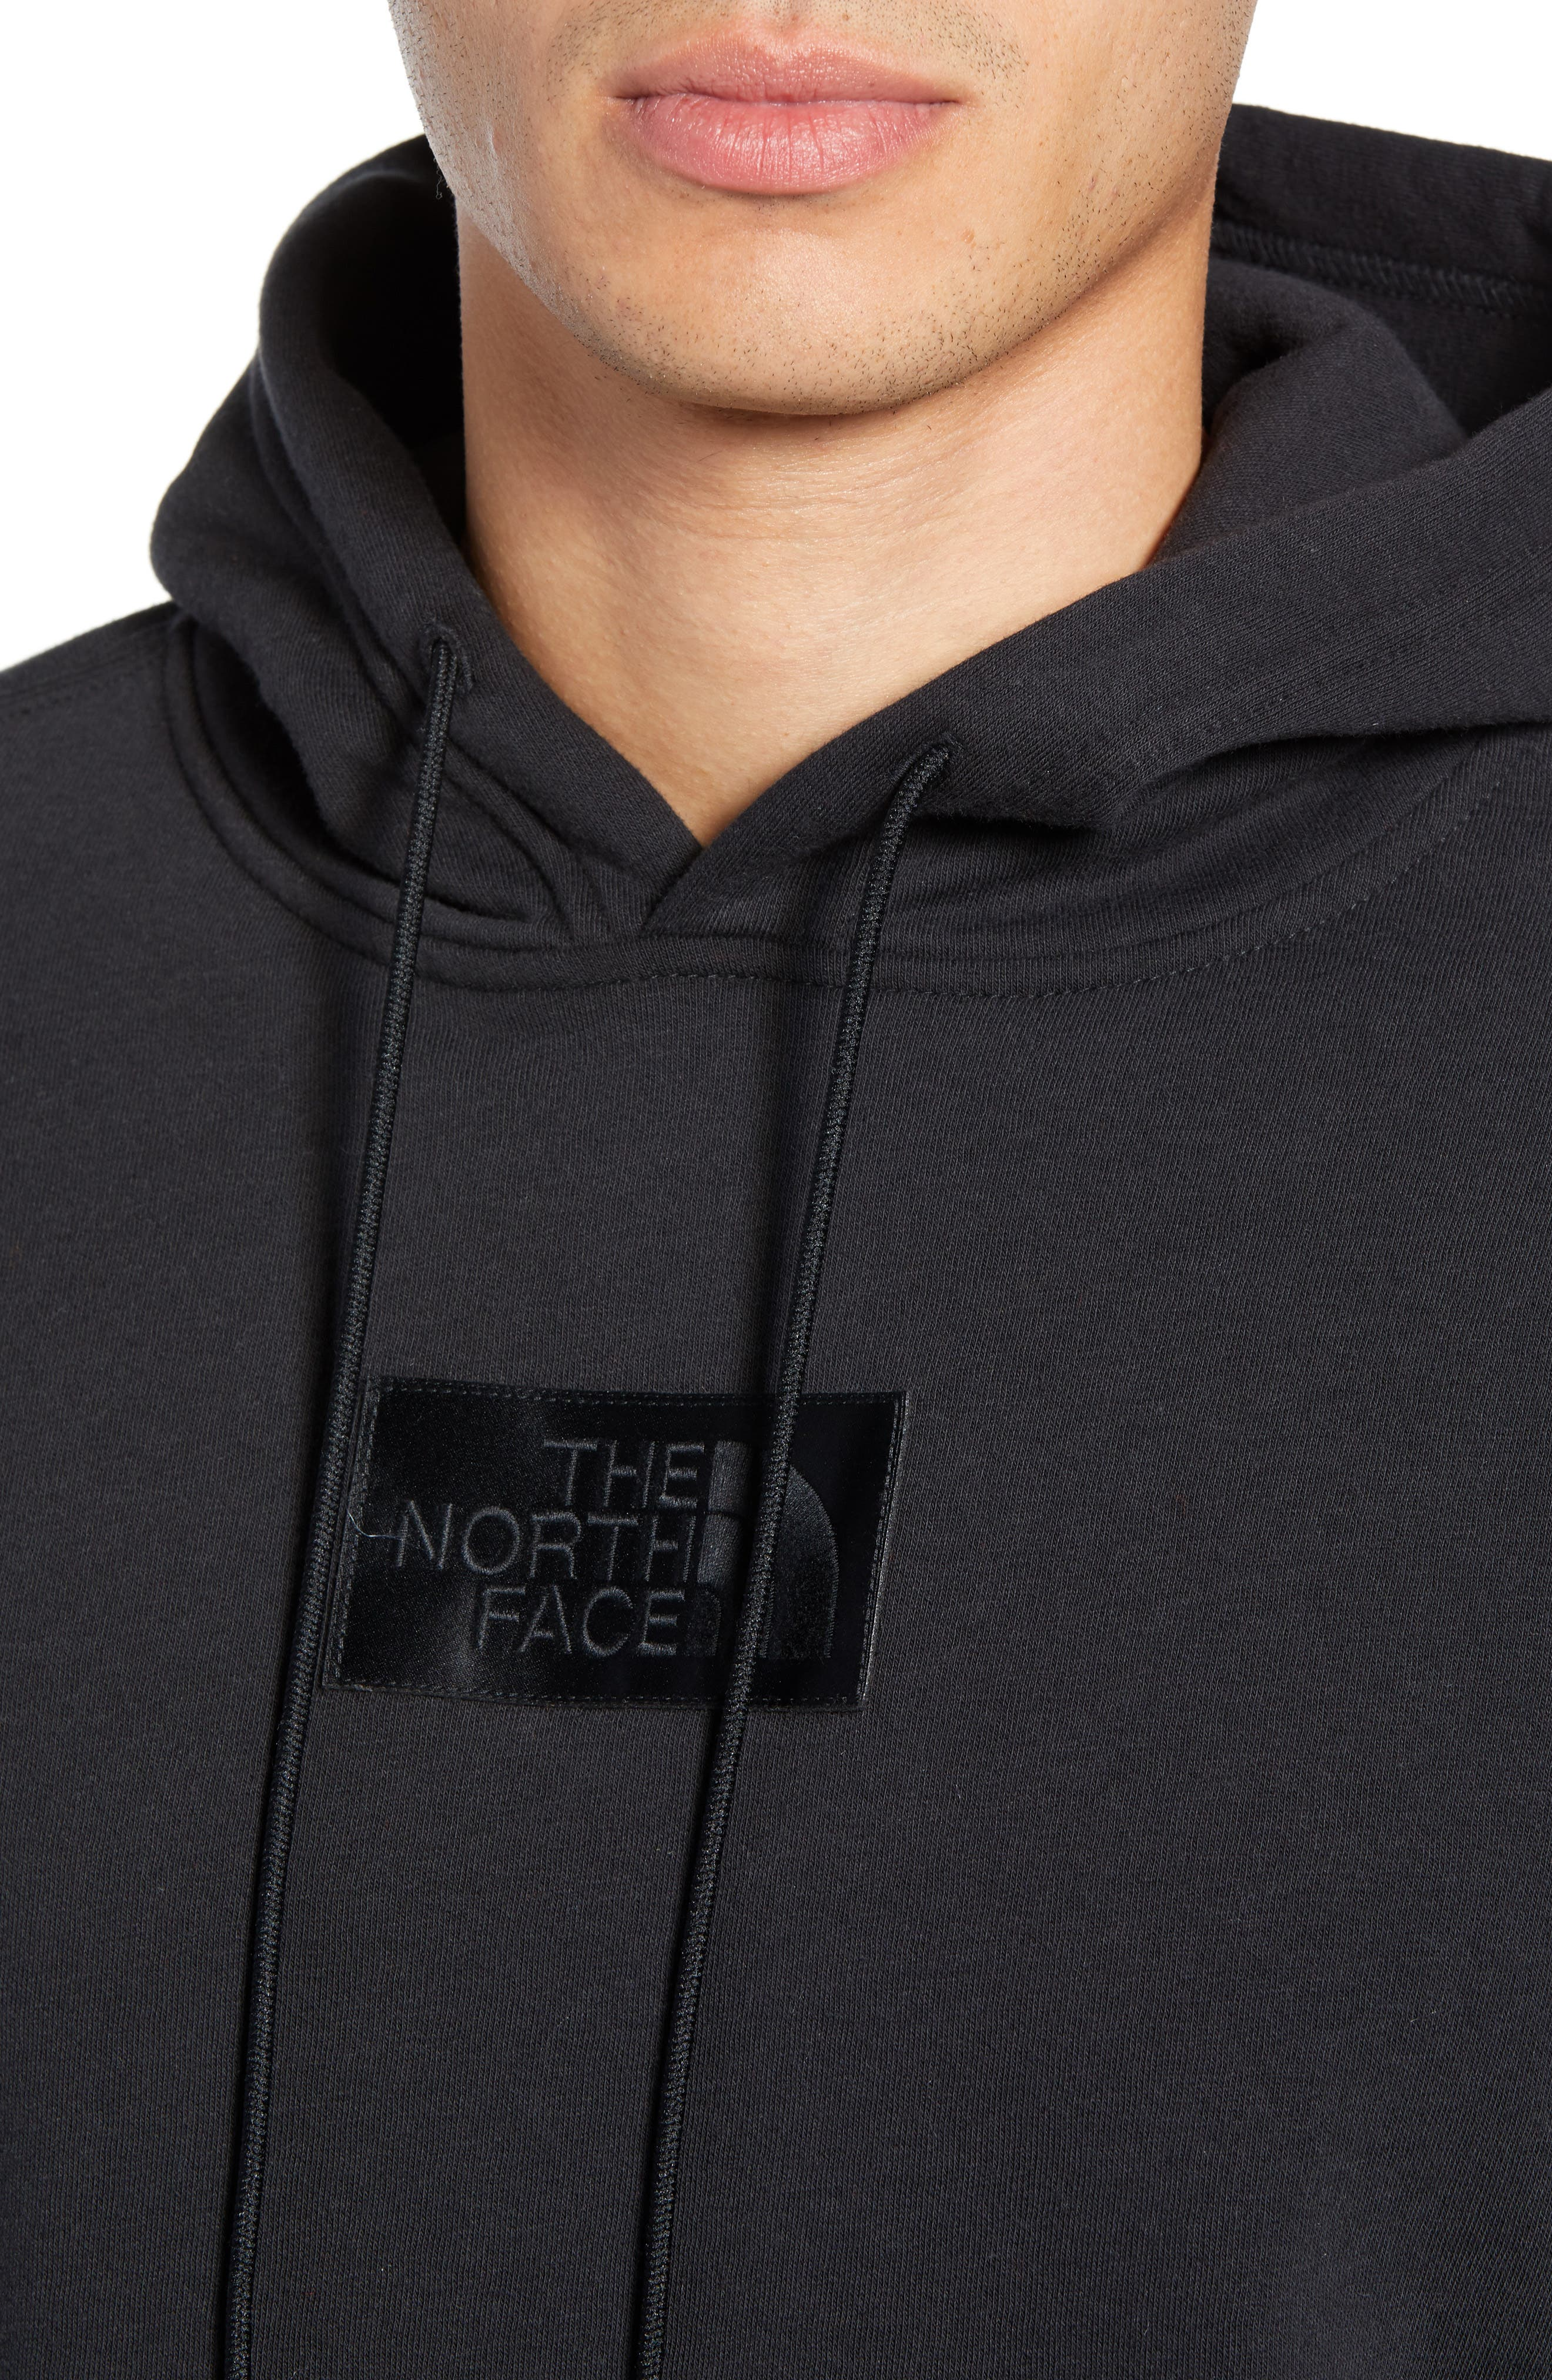 THE NORTH FACE, Urban Ex Collection Pullover Hoodie, Alternate thumbnail 4, color, TNF BLACK